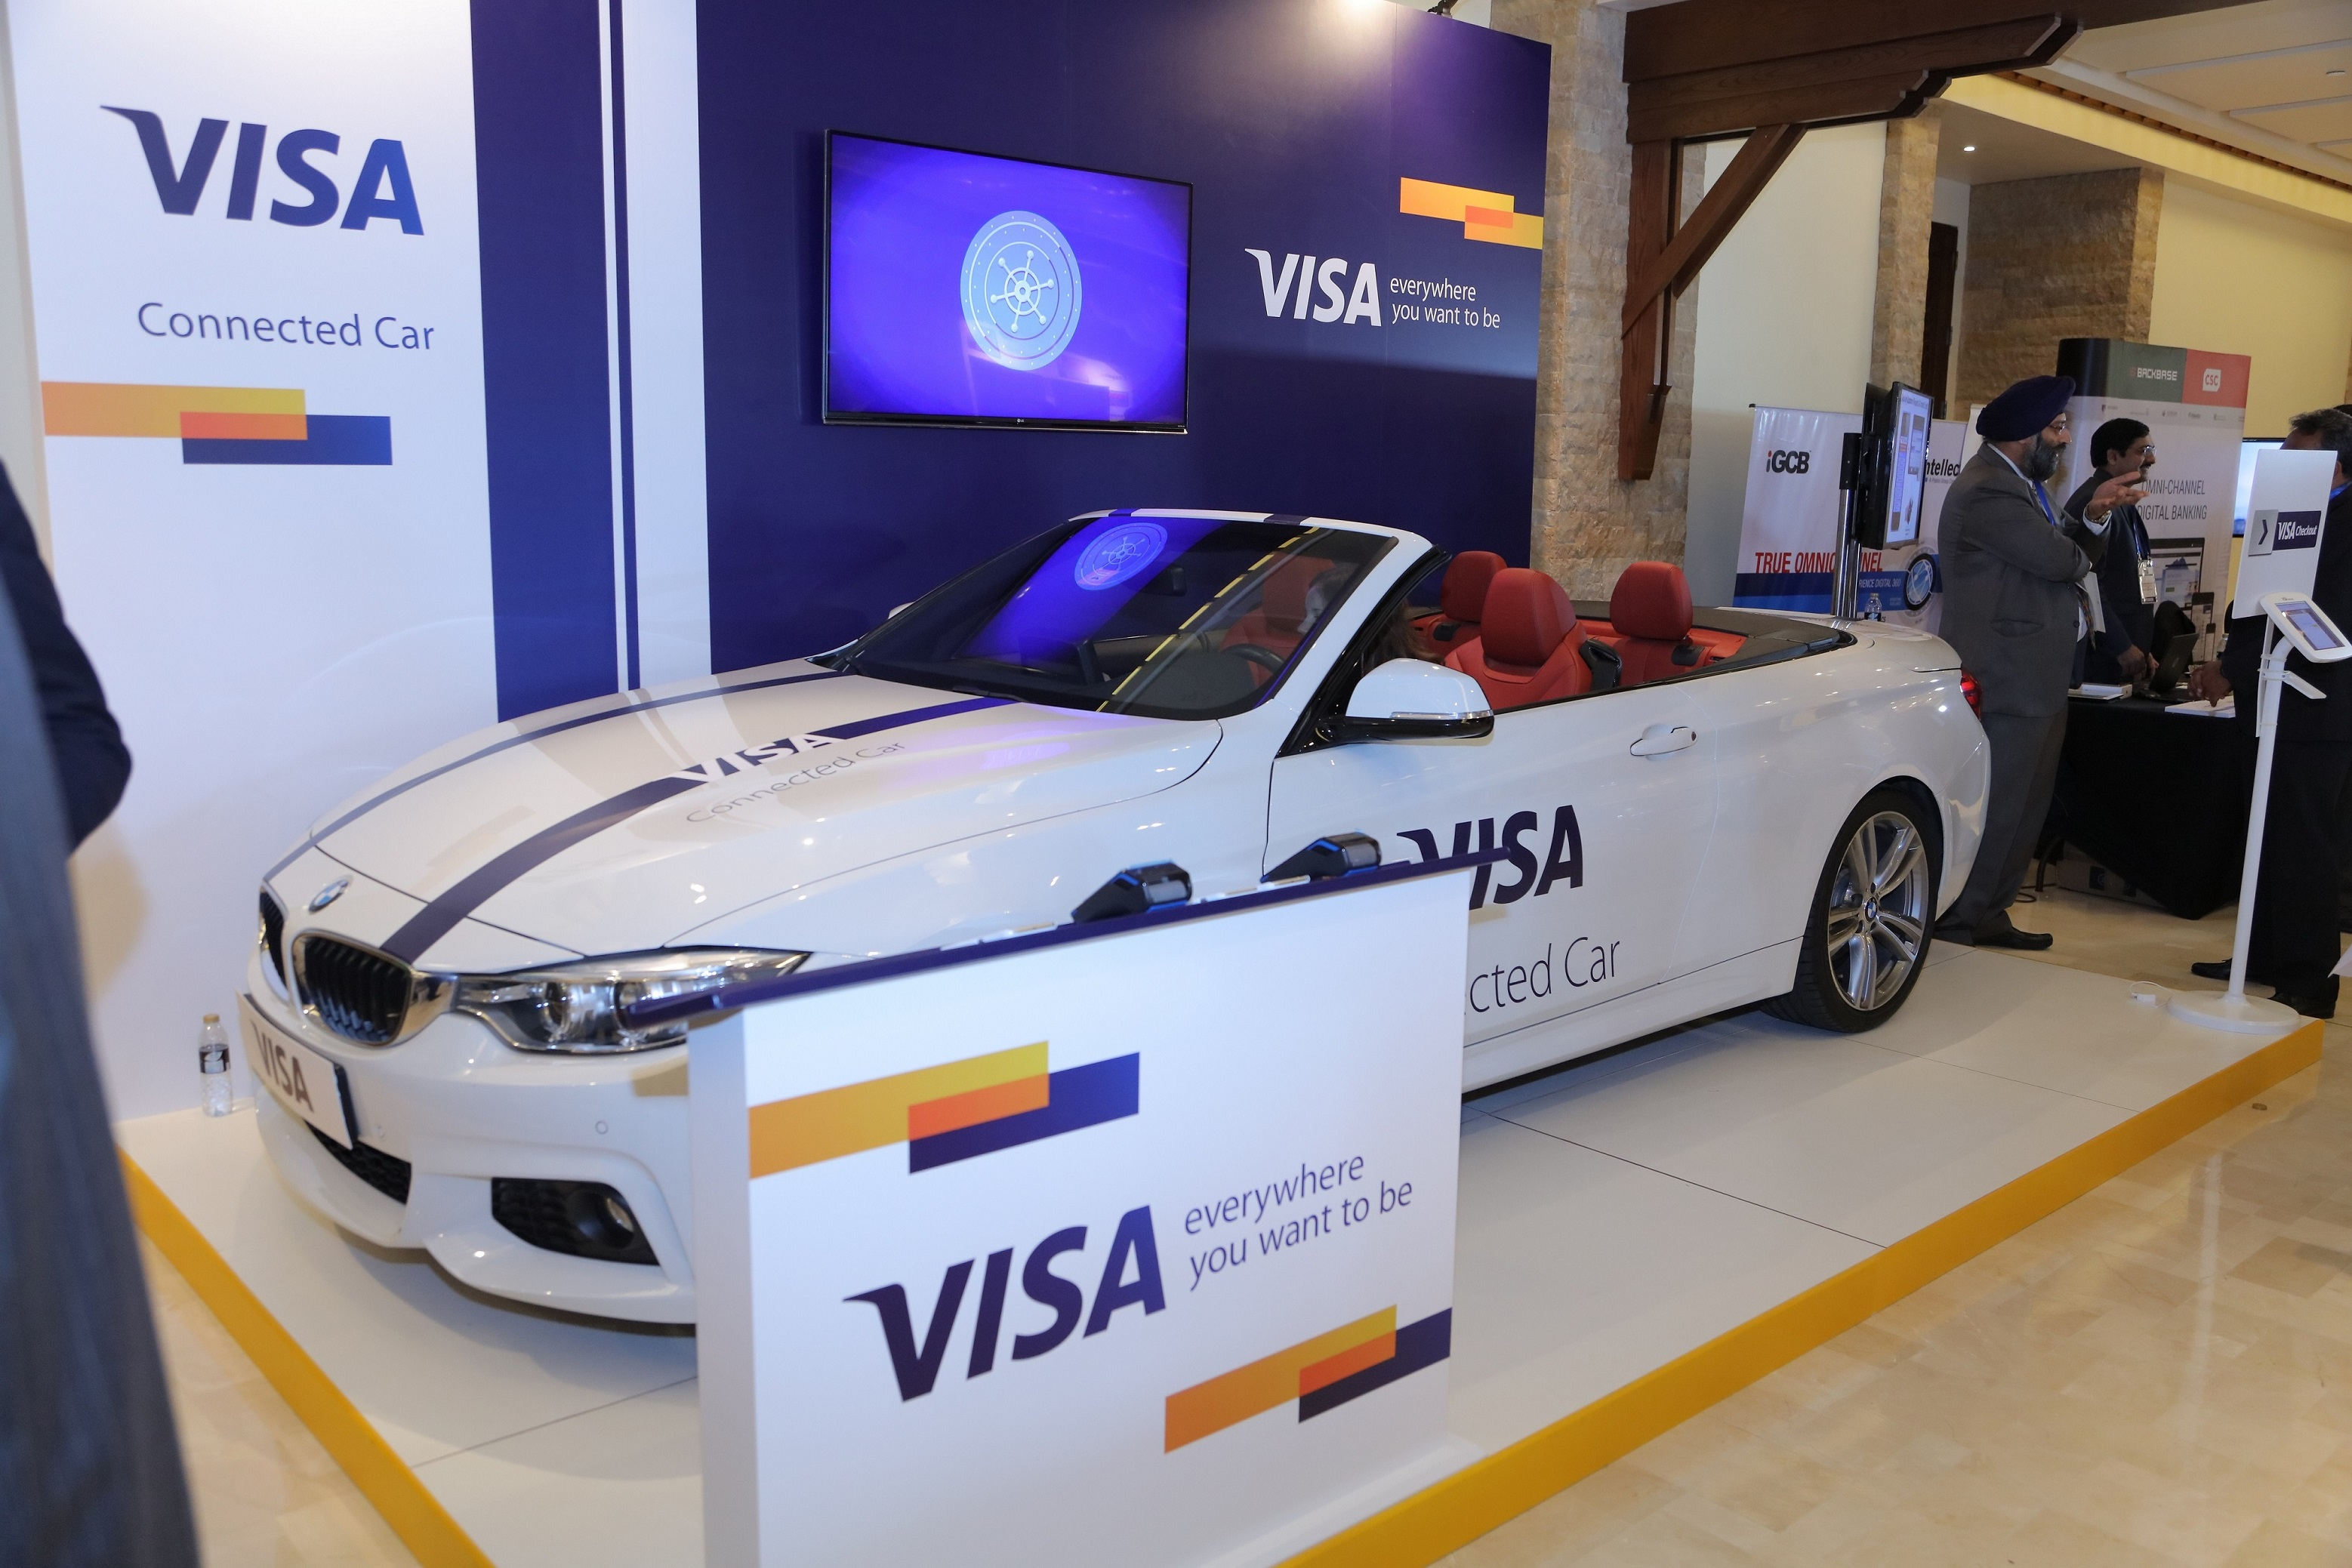 visa-showcases-the-future-of-the-connected-car-commerce